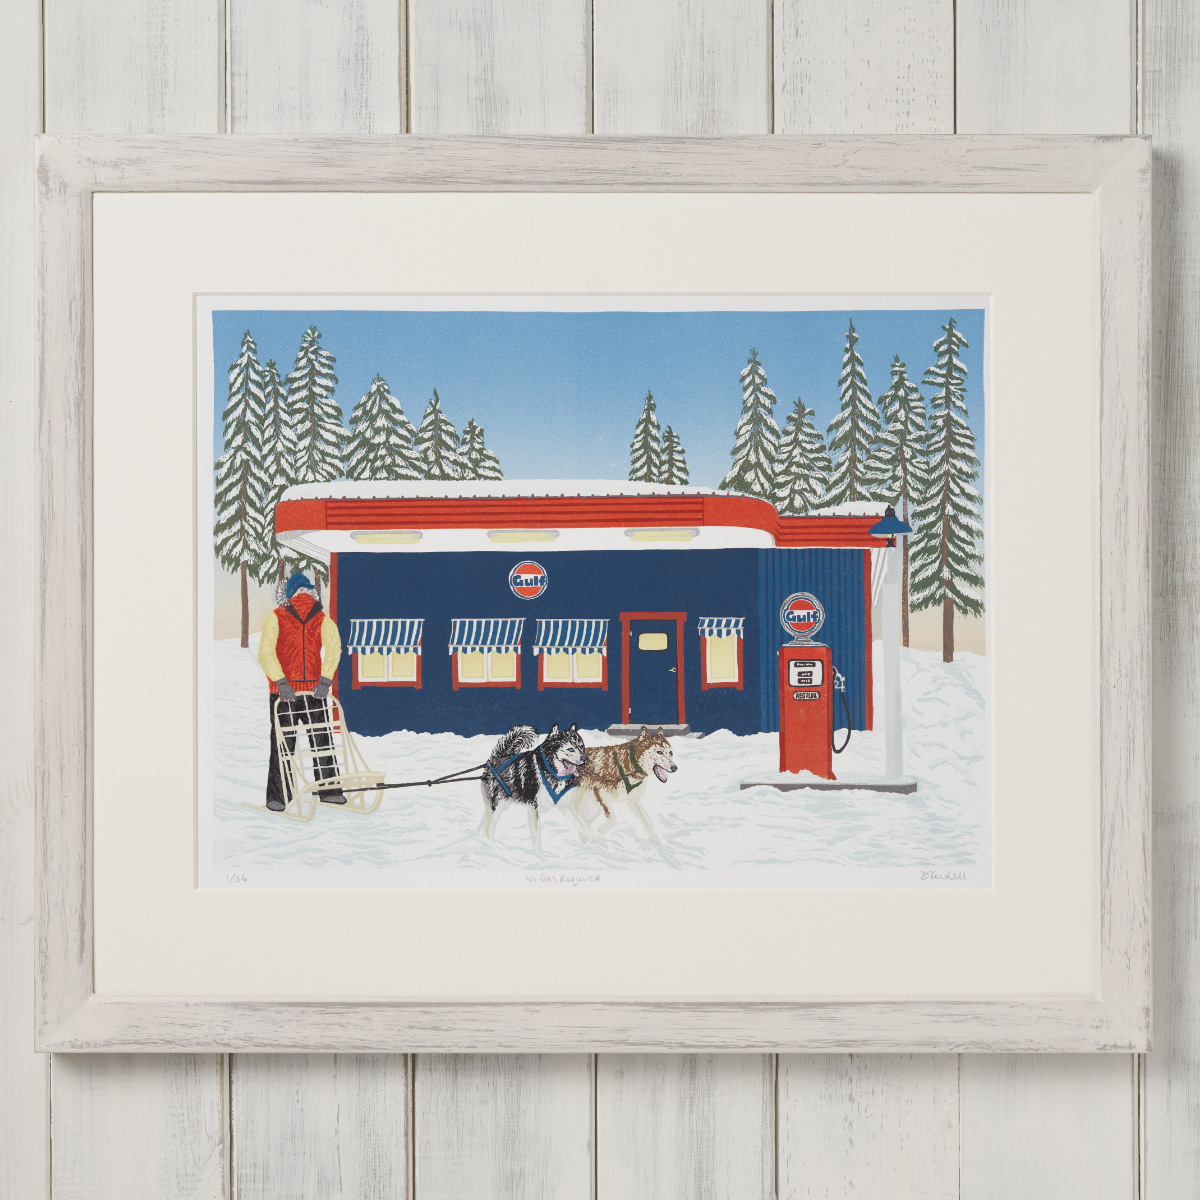 Framed No Gas Required Dog Sled Gas Station Linoprint  | The Enlightened Hound